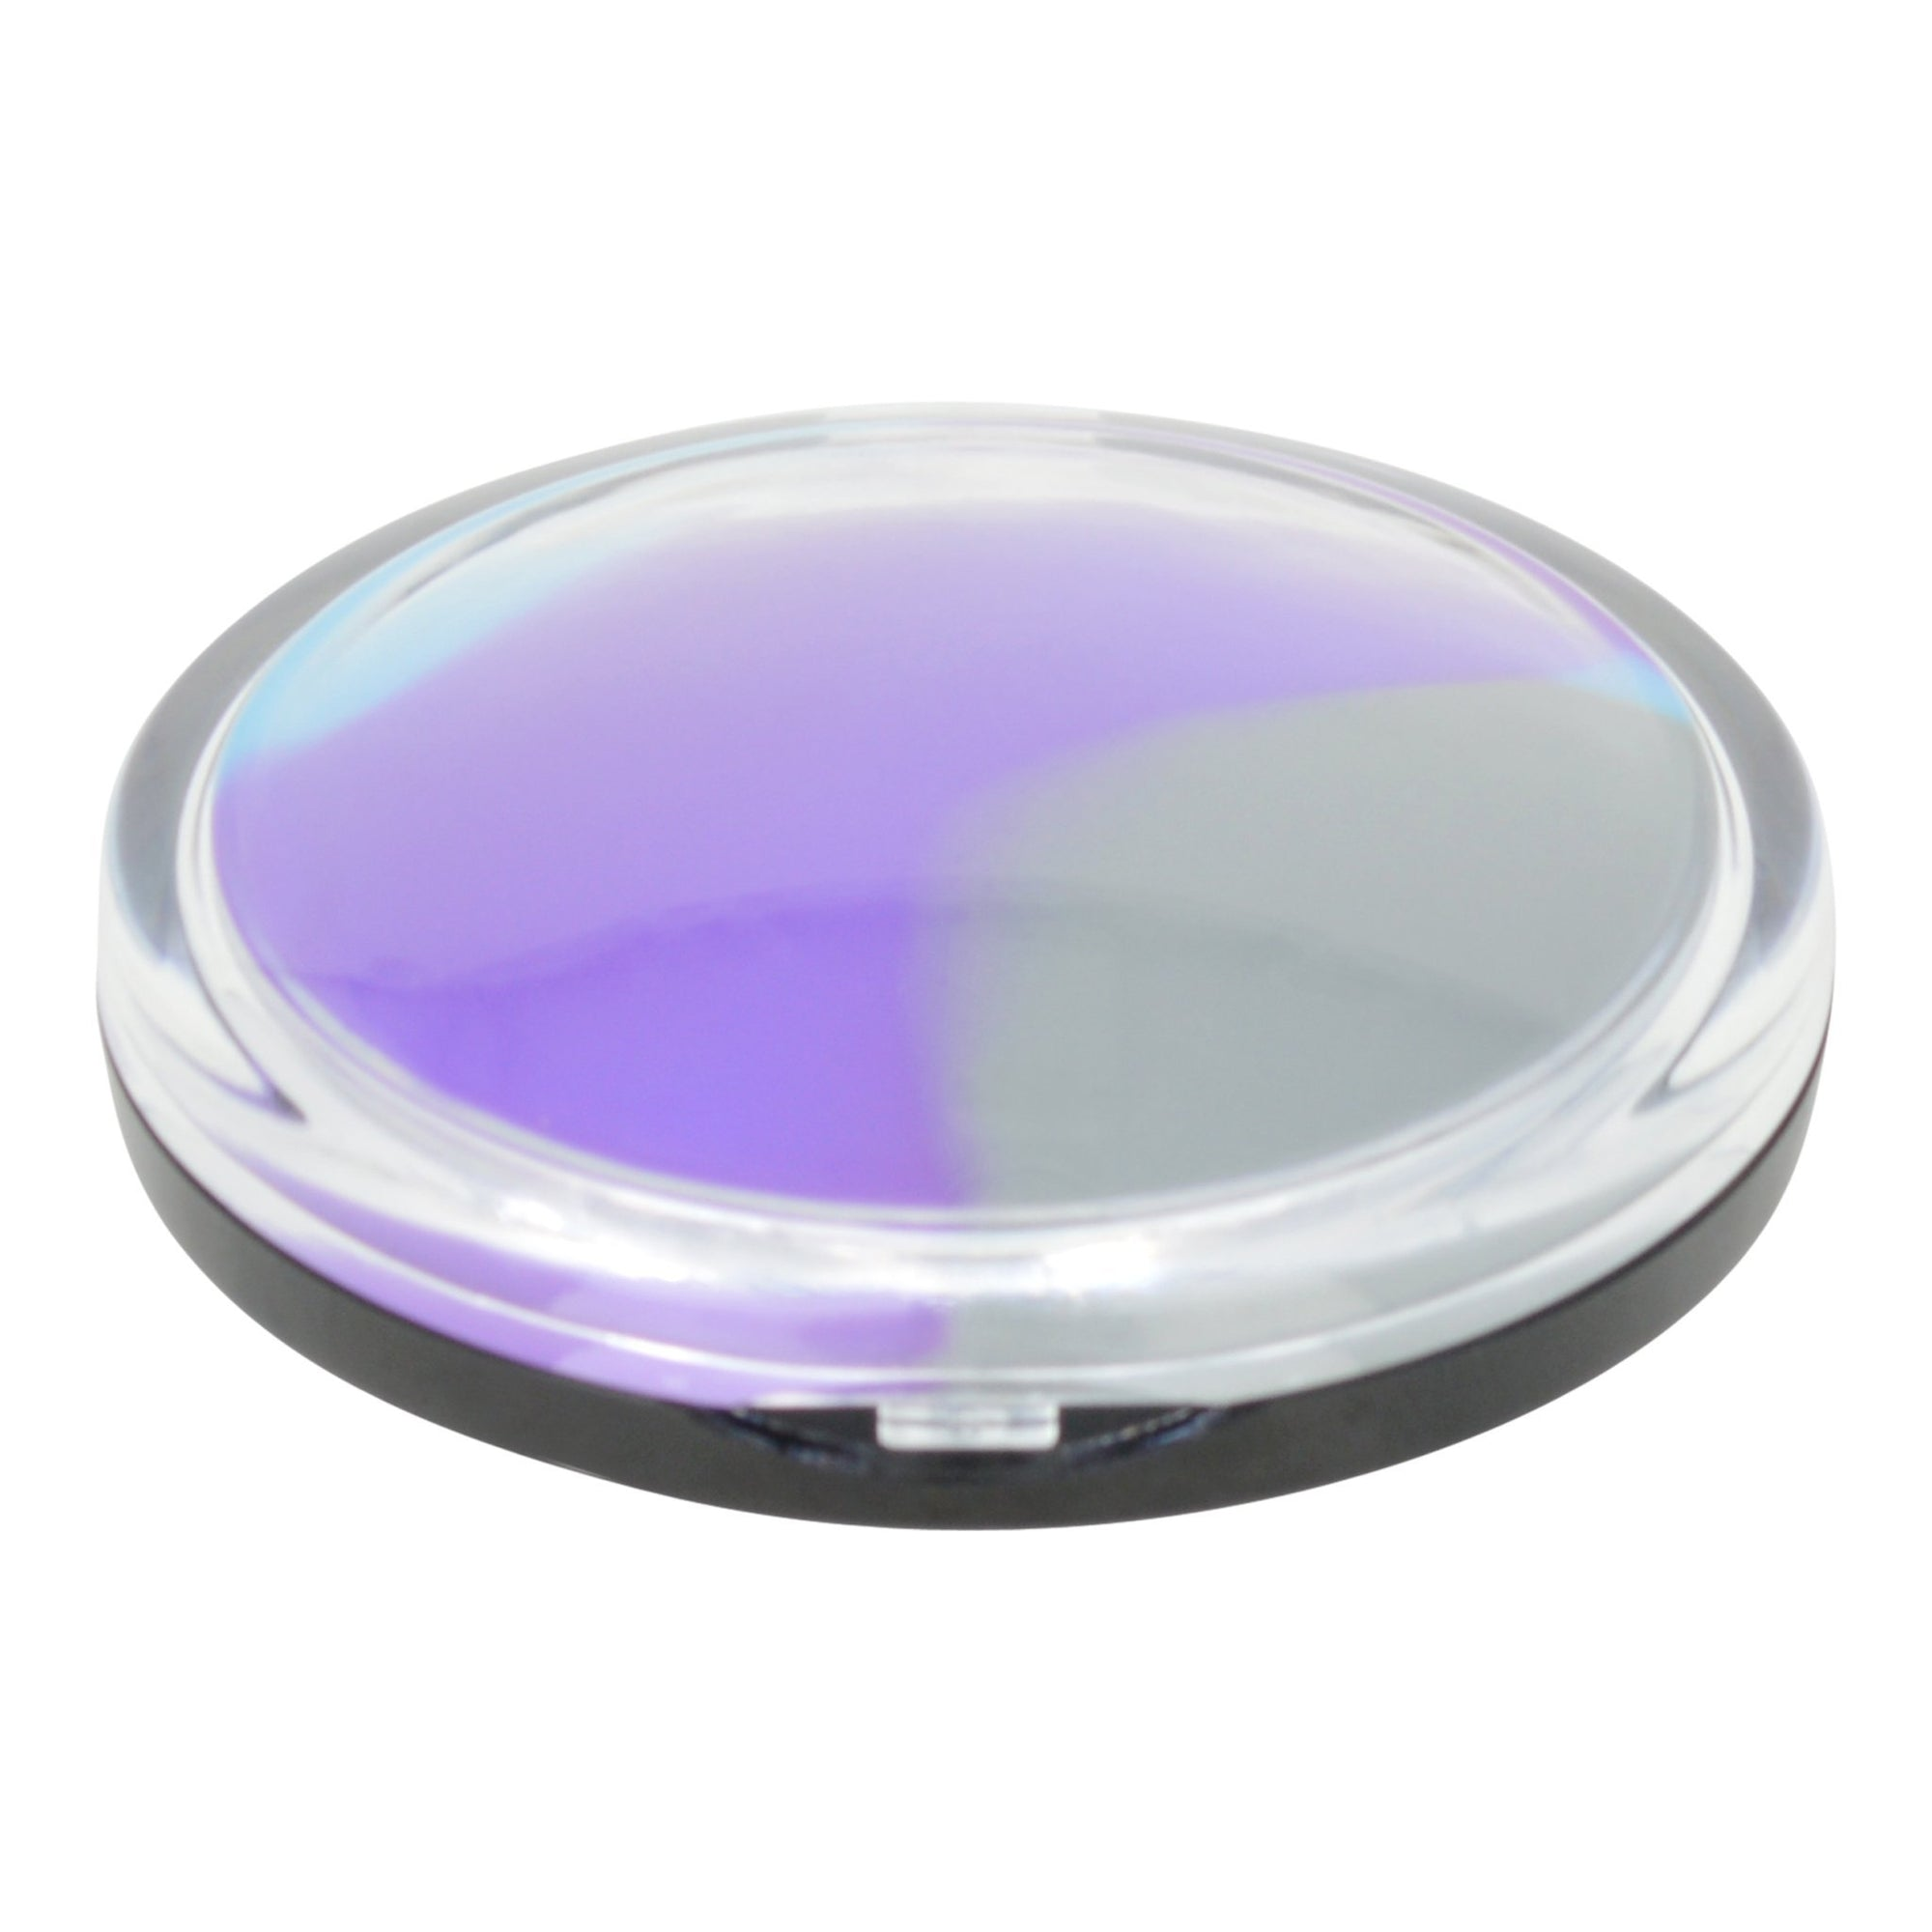 Round silicone stash container smoking accessory with clam seashell makeup compact design prismatic color